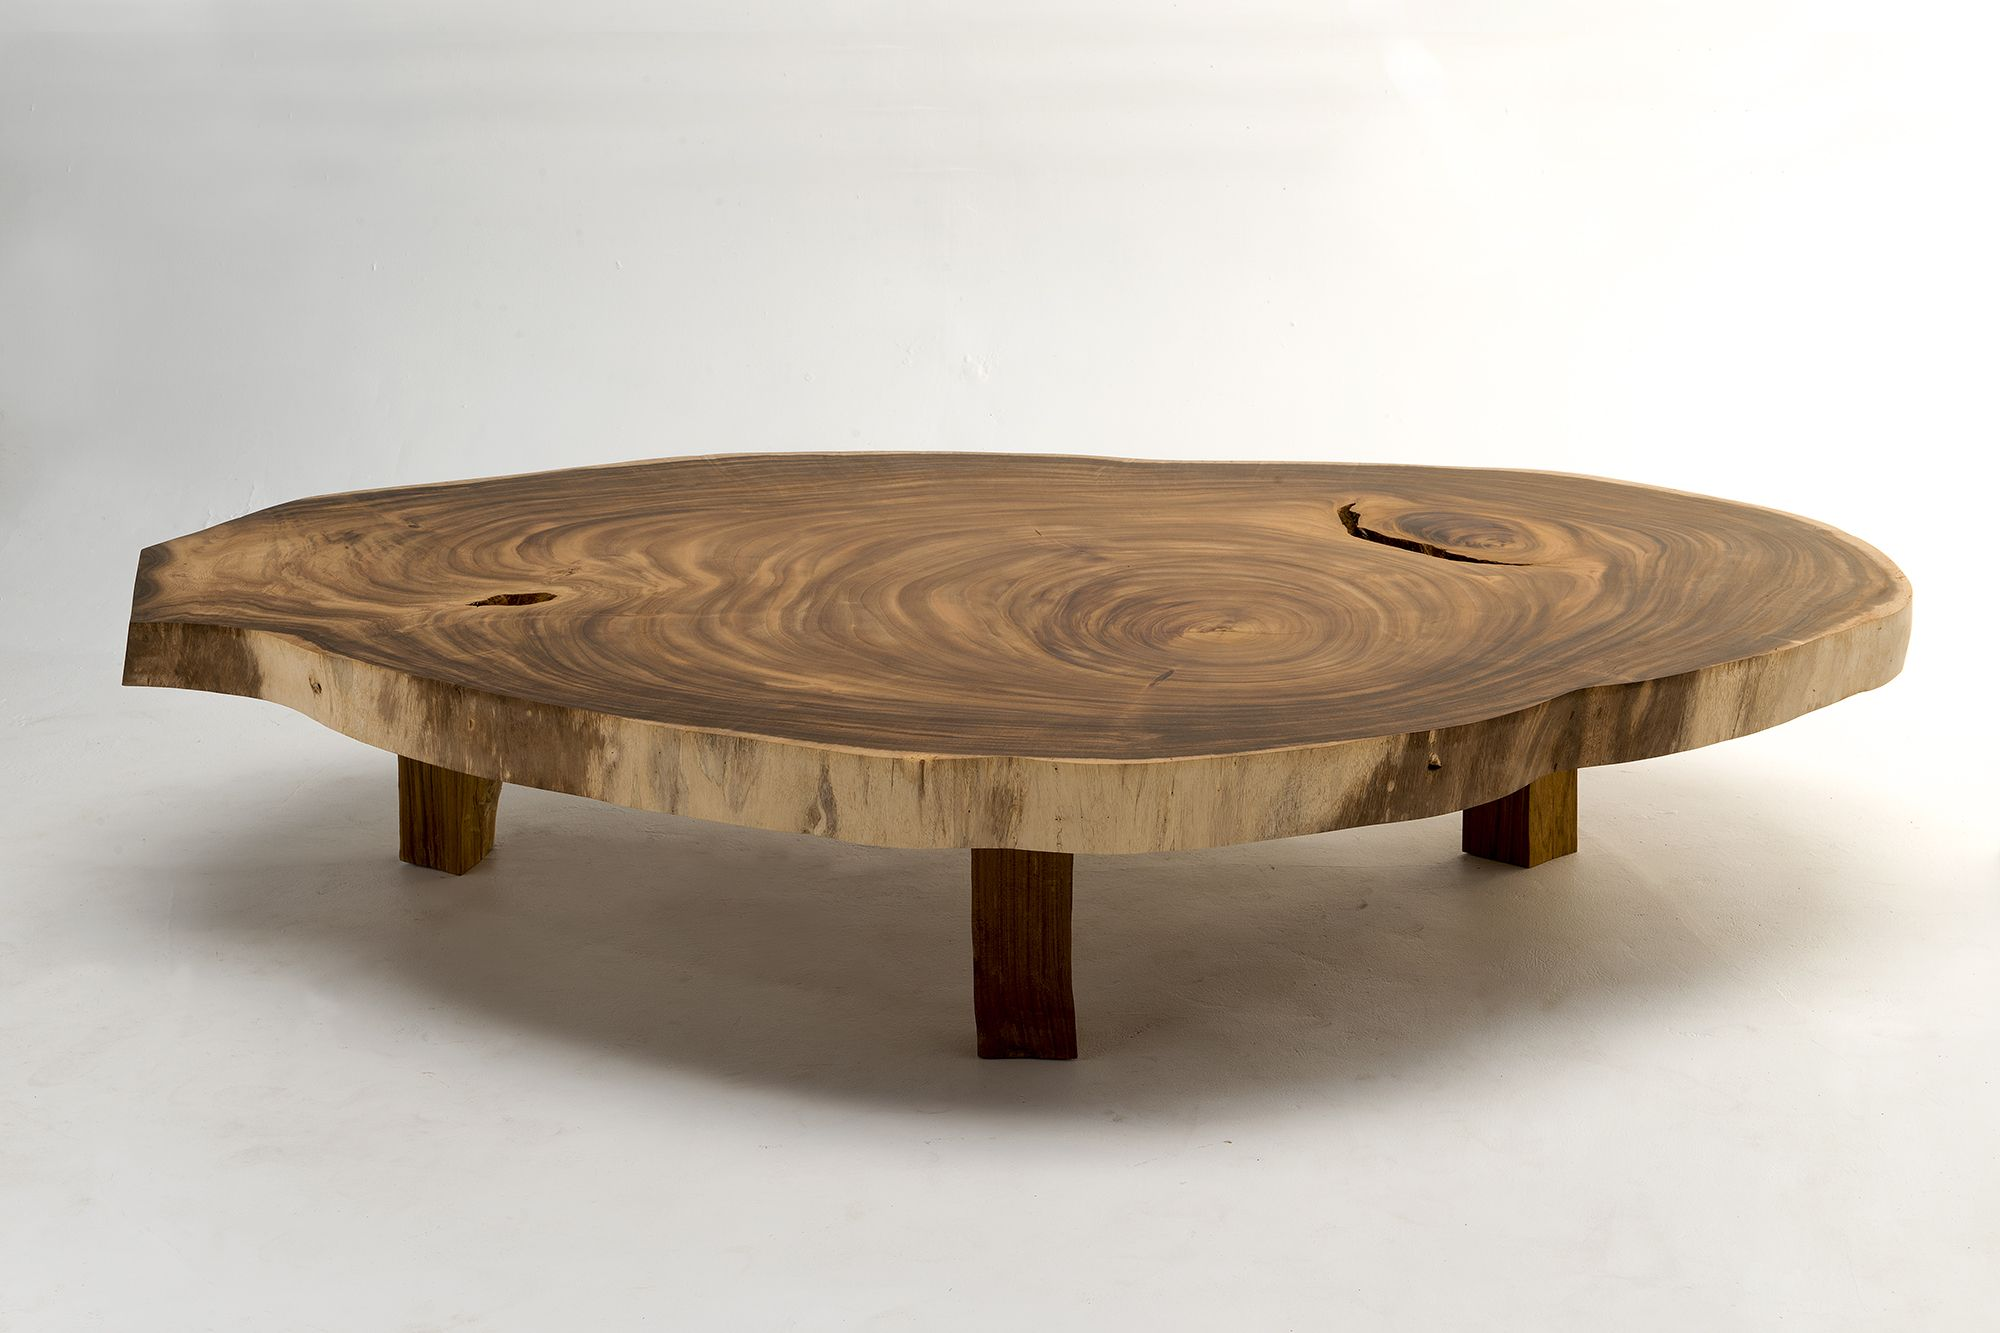 Chista Furniture Coffee Tables Suar Coffee Table Furniture Table [ 1333 x 2000 Pixel ]